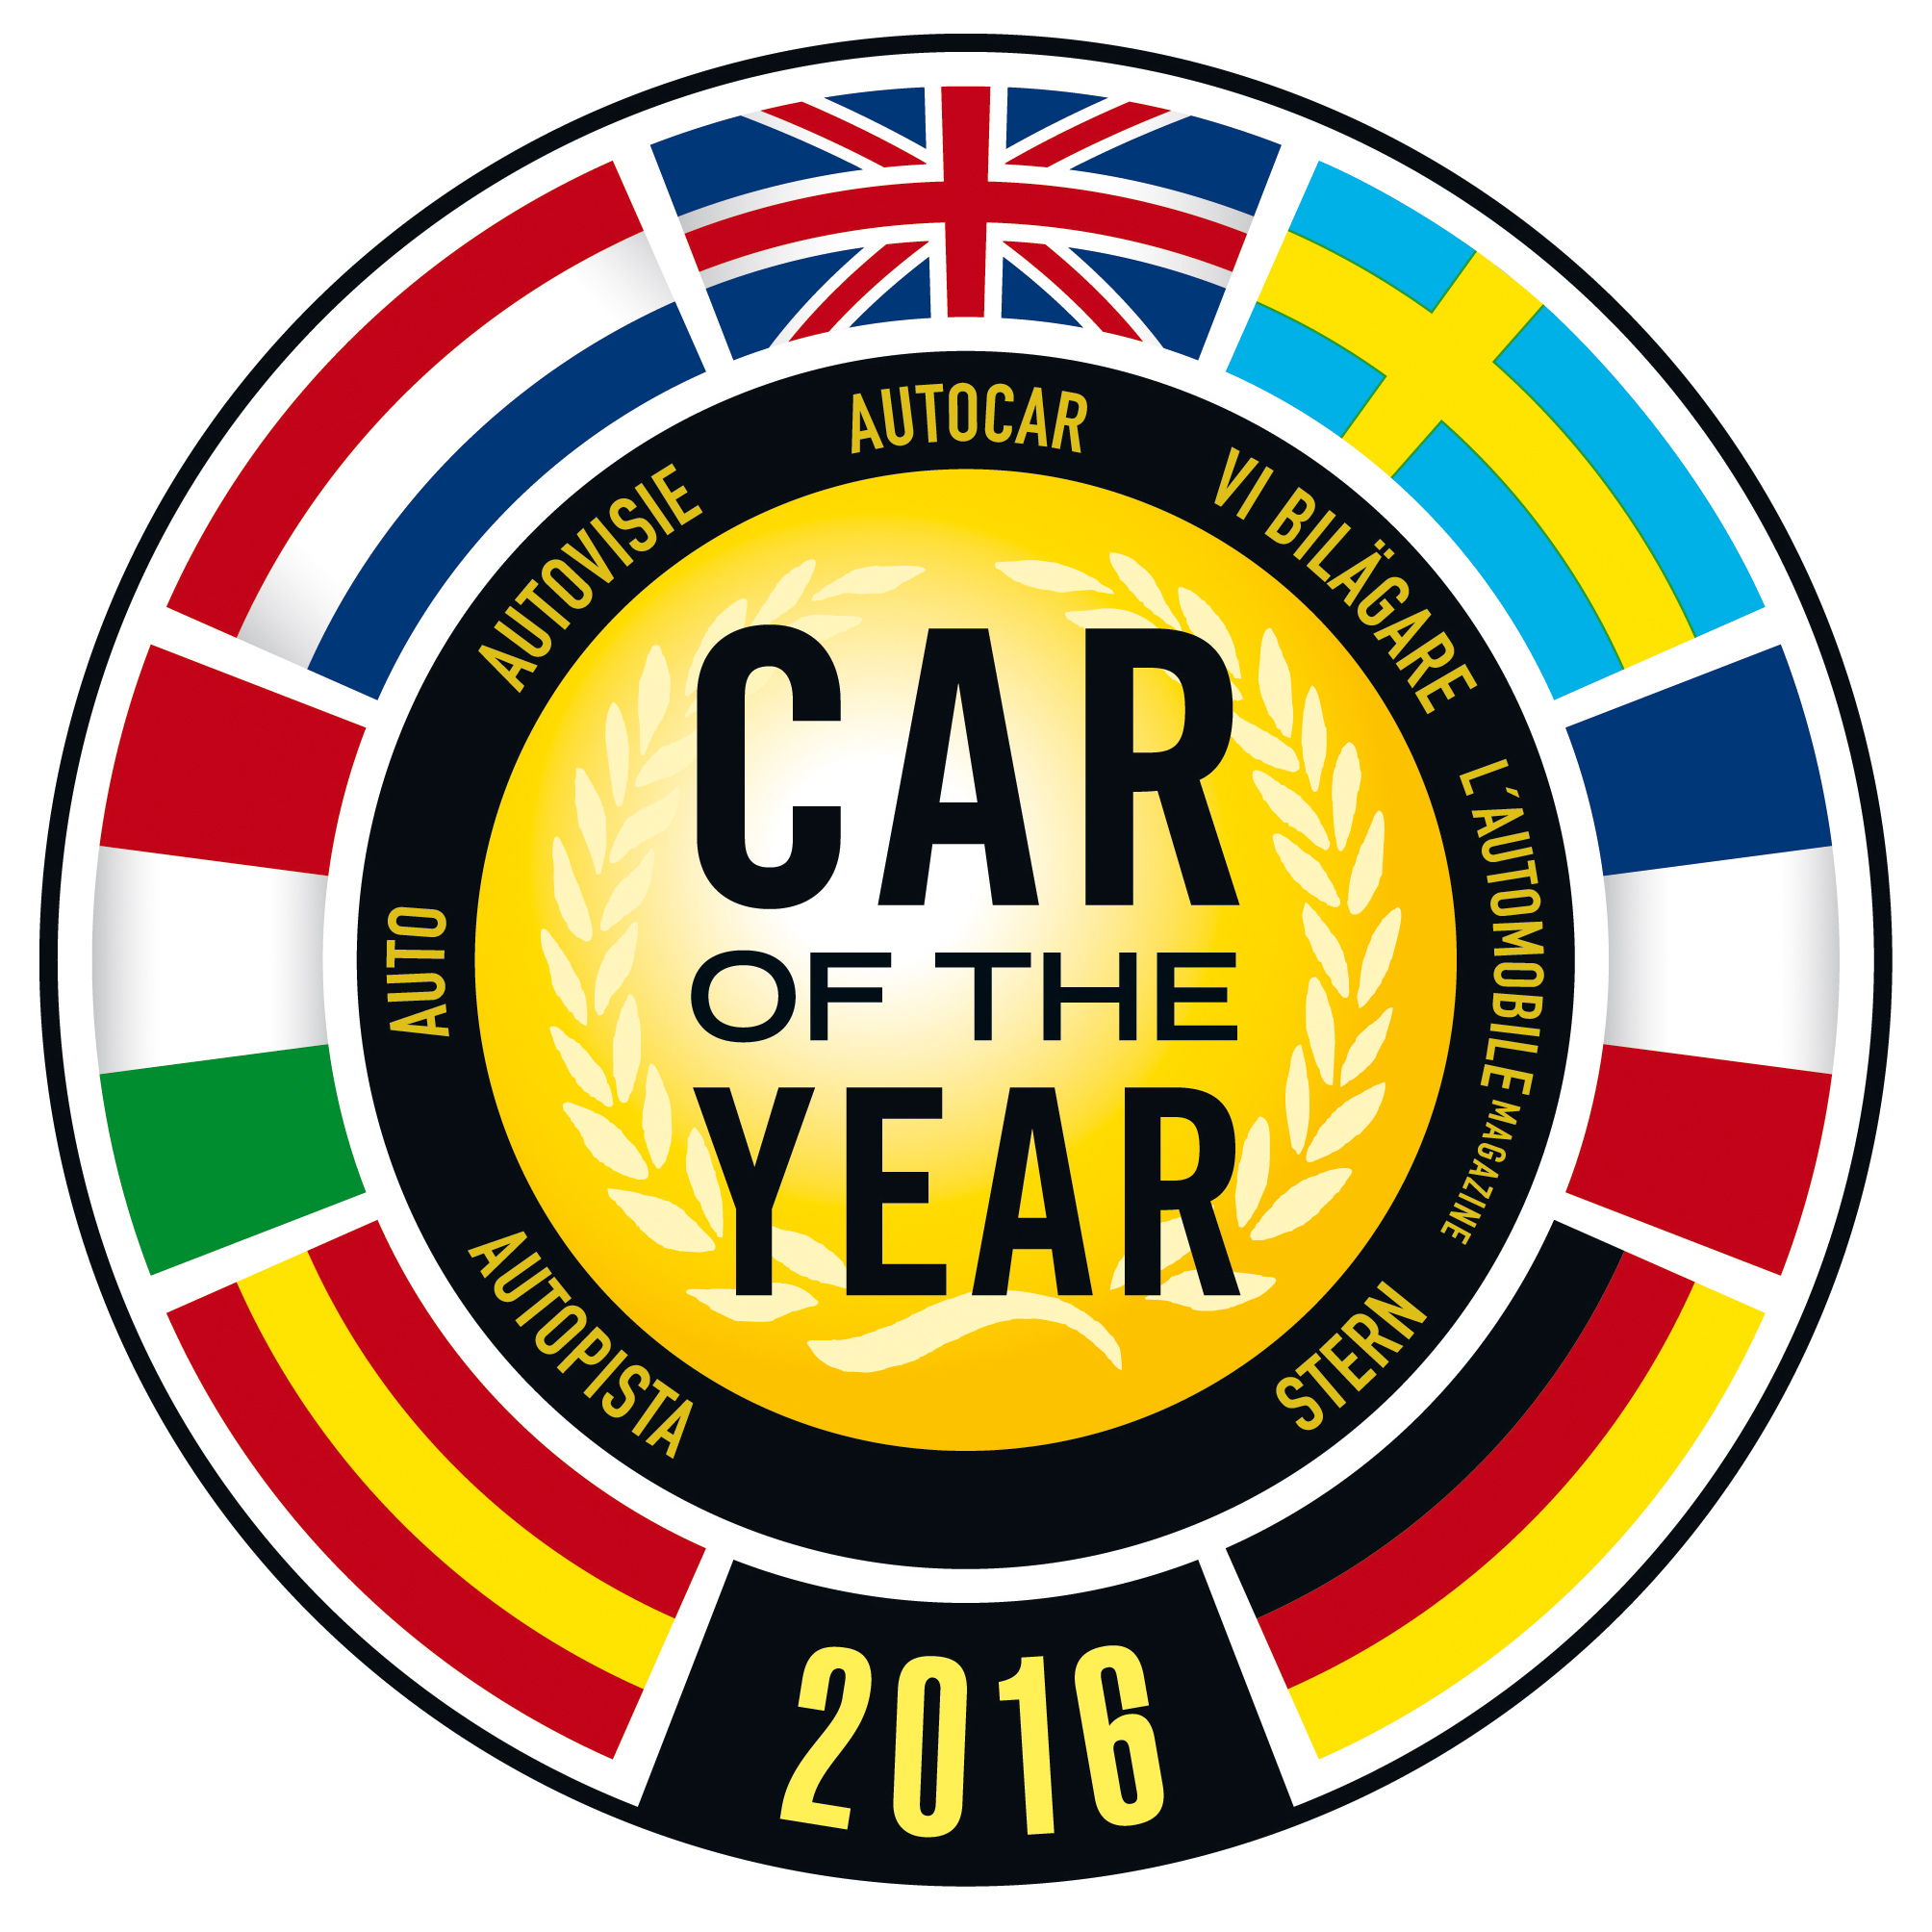 Opel-Astra-Car-of-the-Year-2016